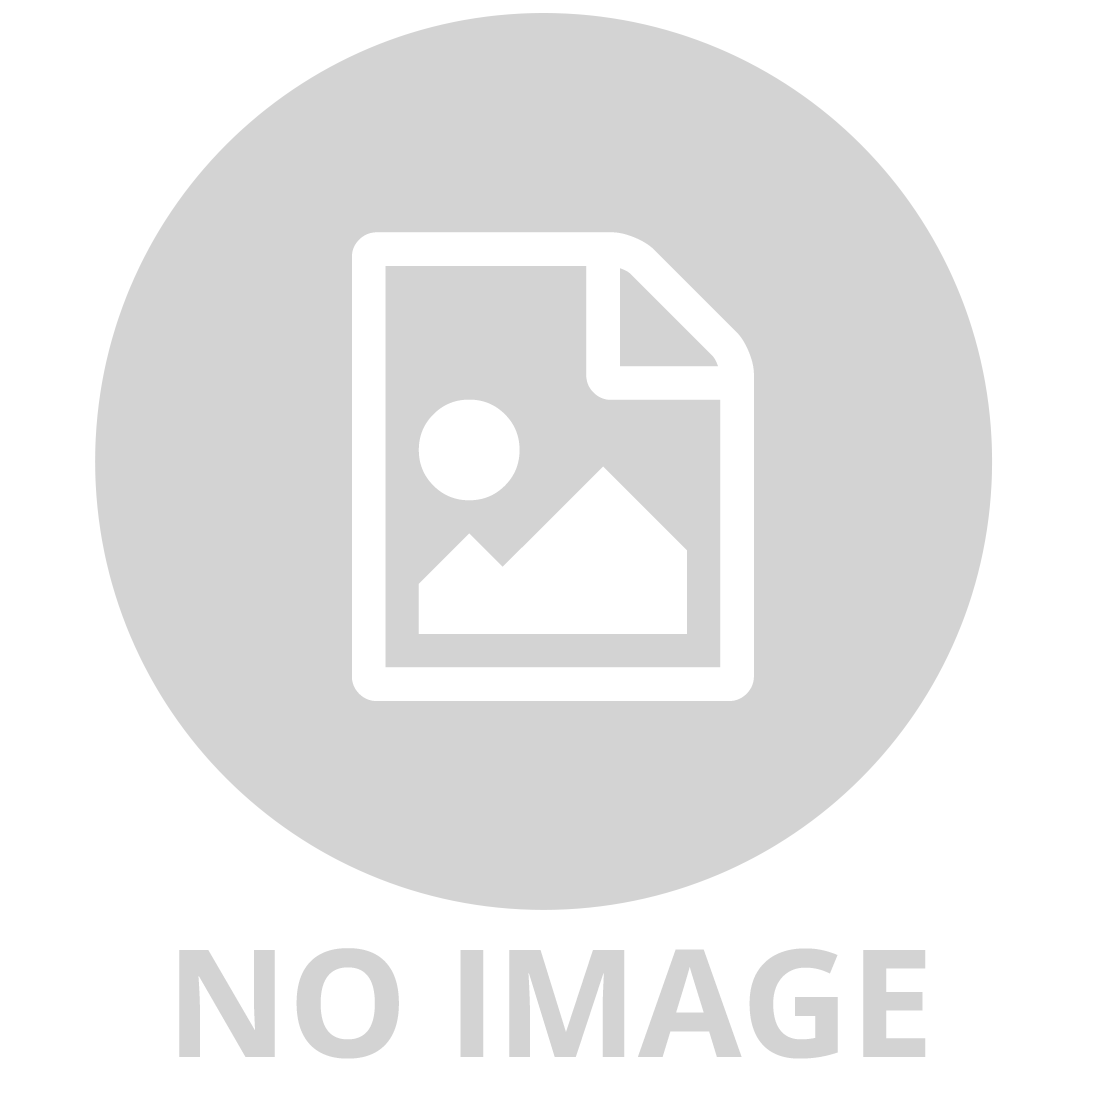 TOP RACER ANALOG 1:64 SCALE POLICE CHASE MERCEDES GT3 SLOT CAR SET